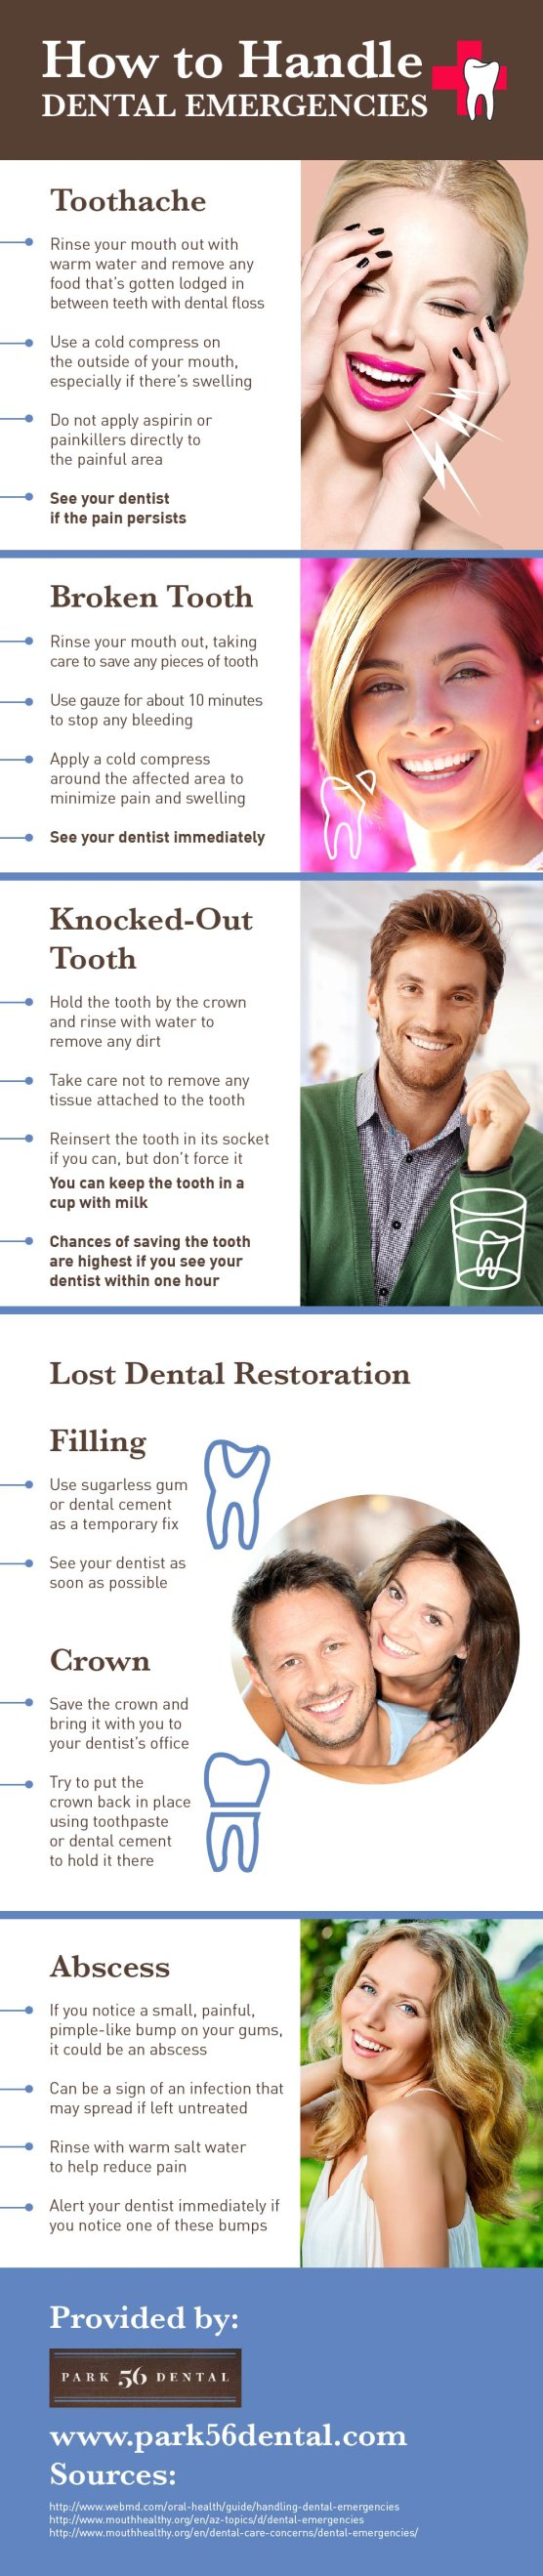 How to Handle Dental Emergencies infographic